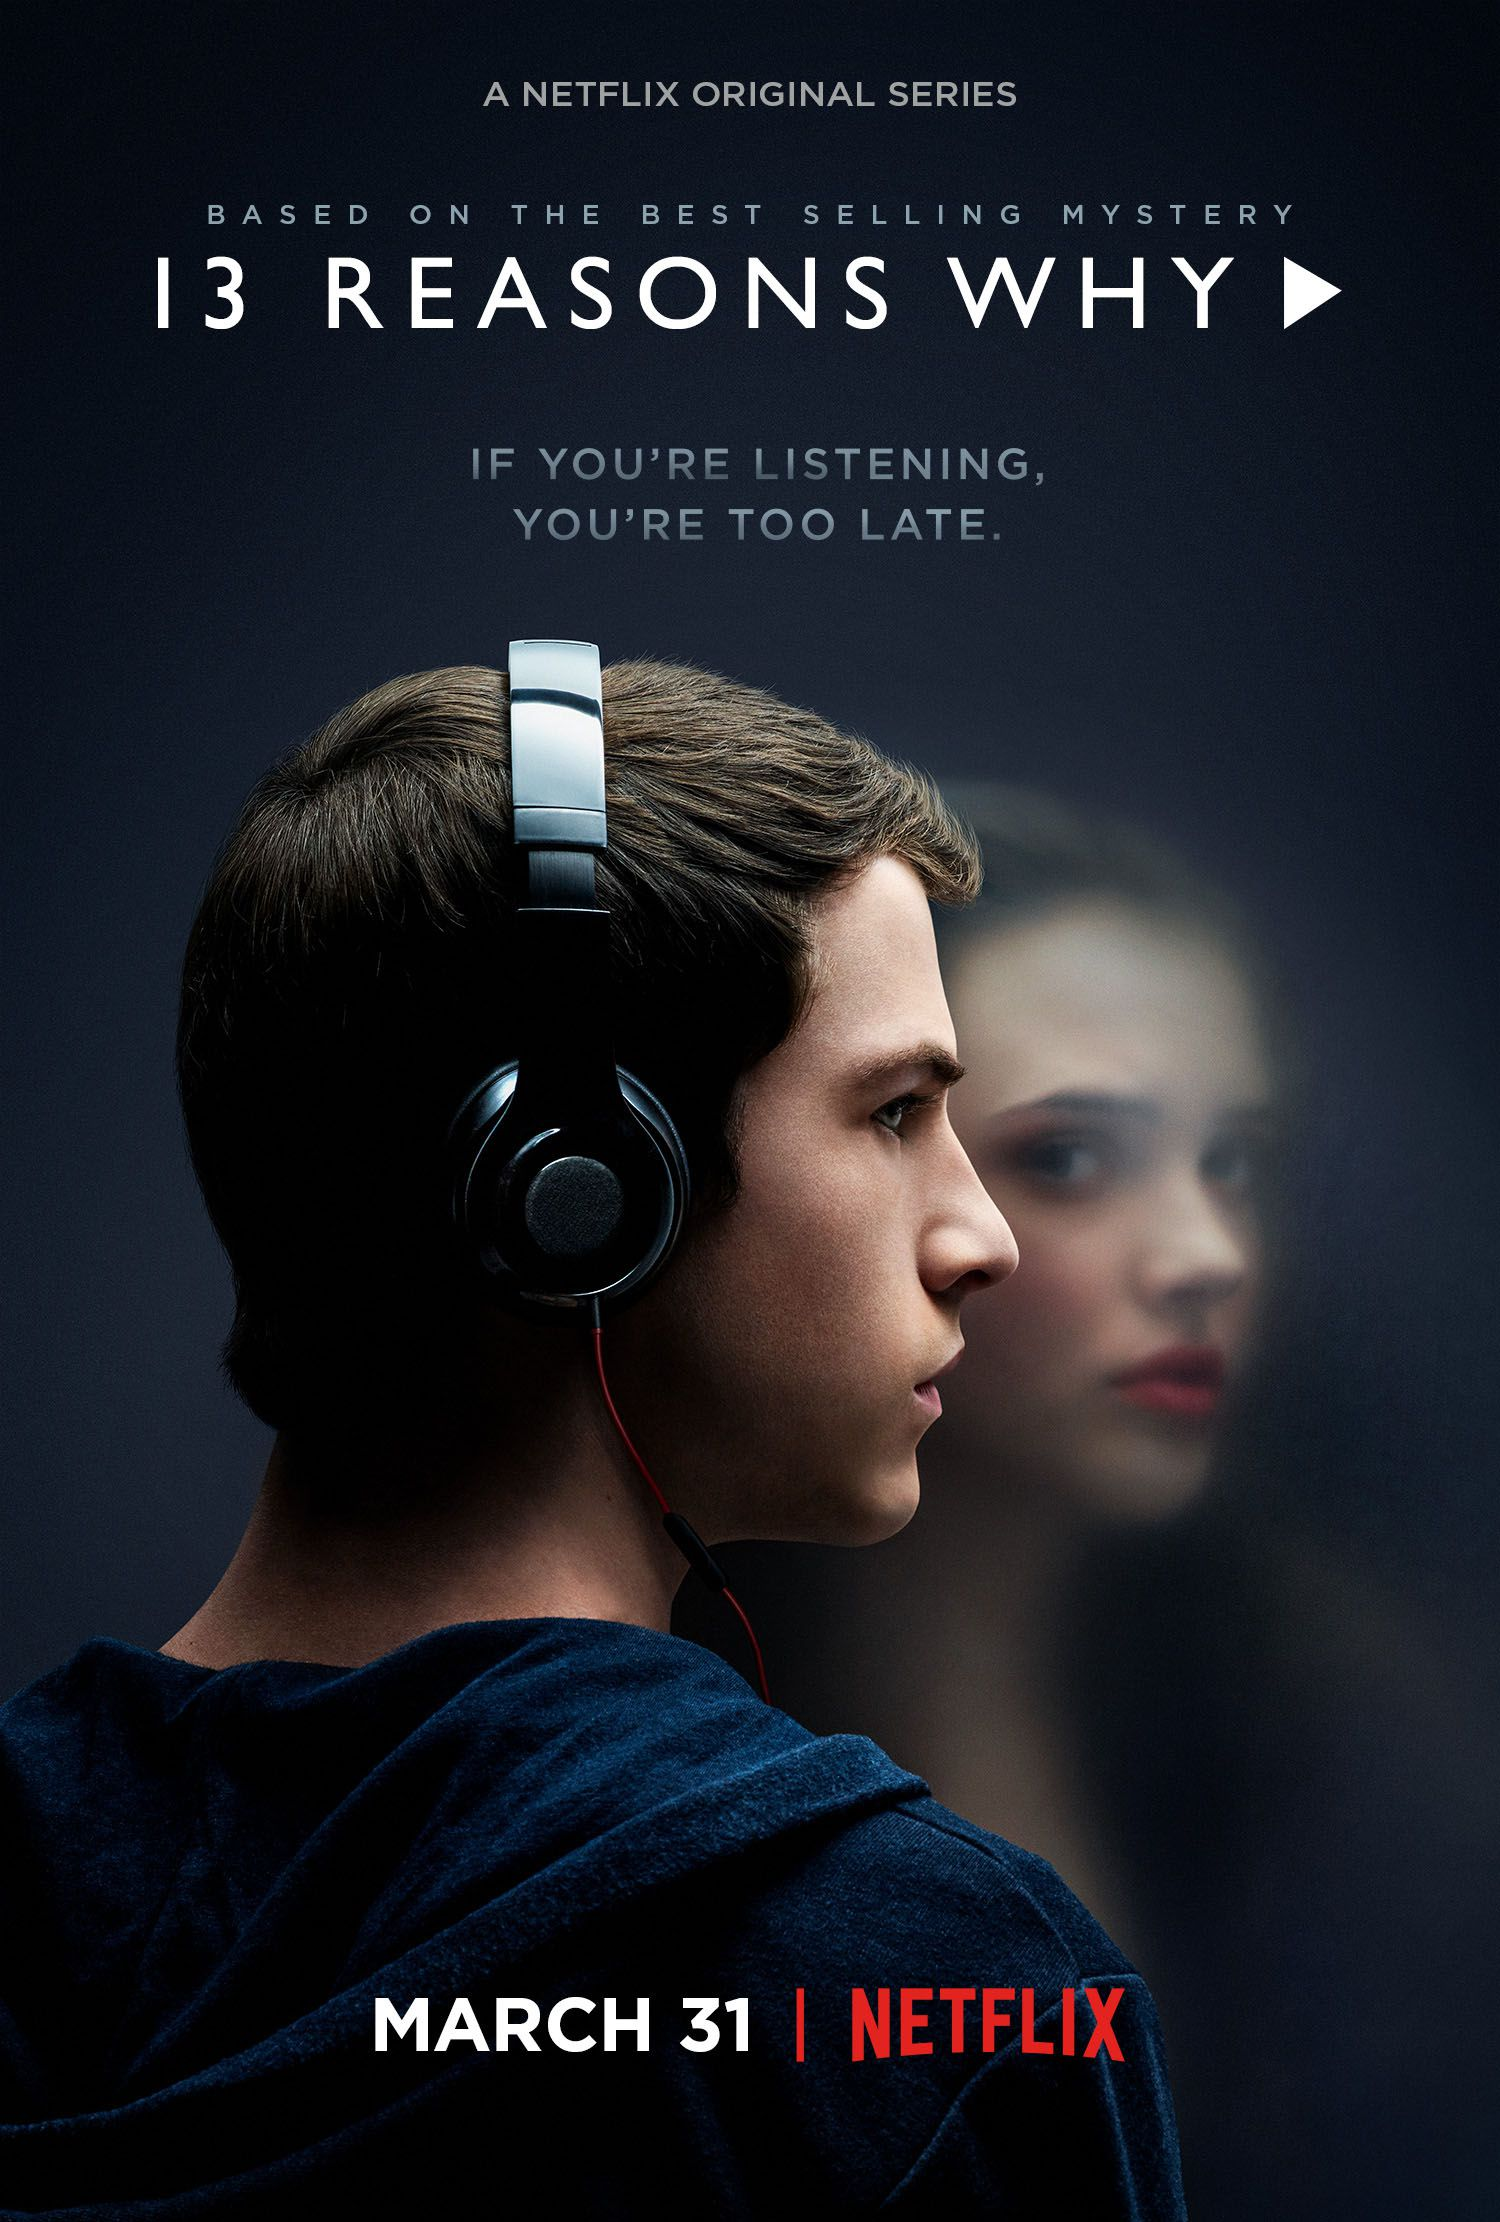 13 Reasons Why - Série (2017) streaming VF gratuit complet